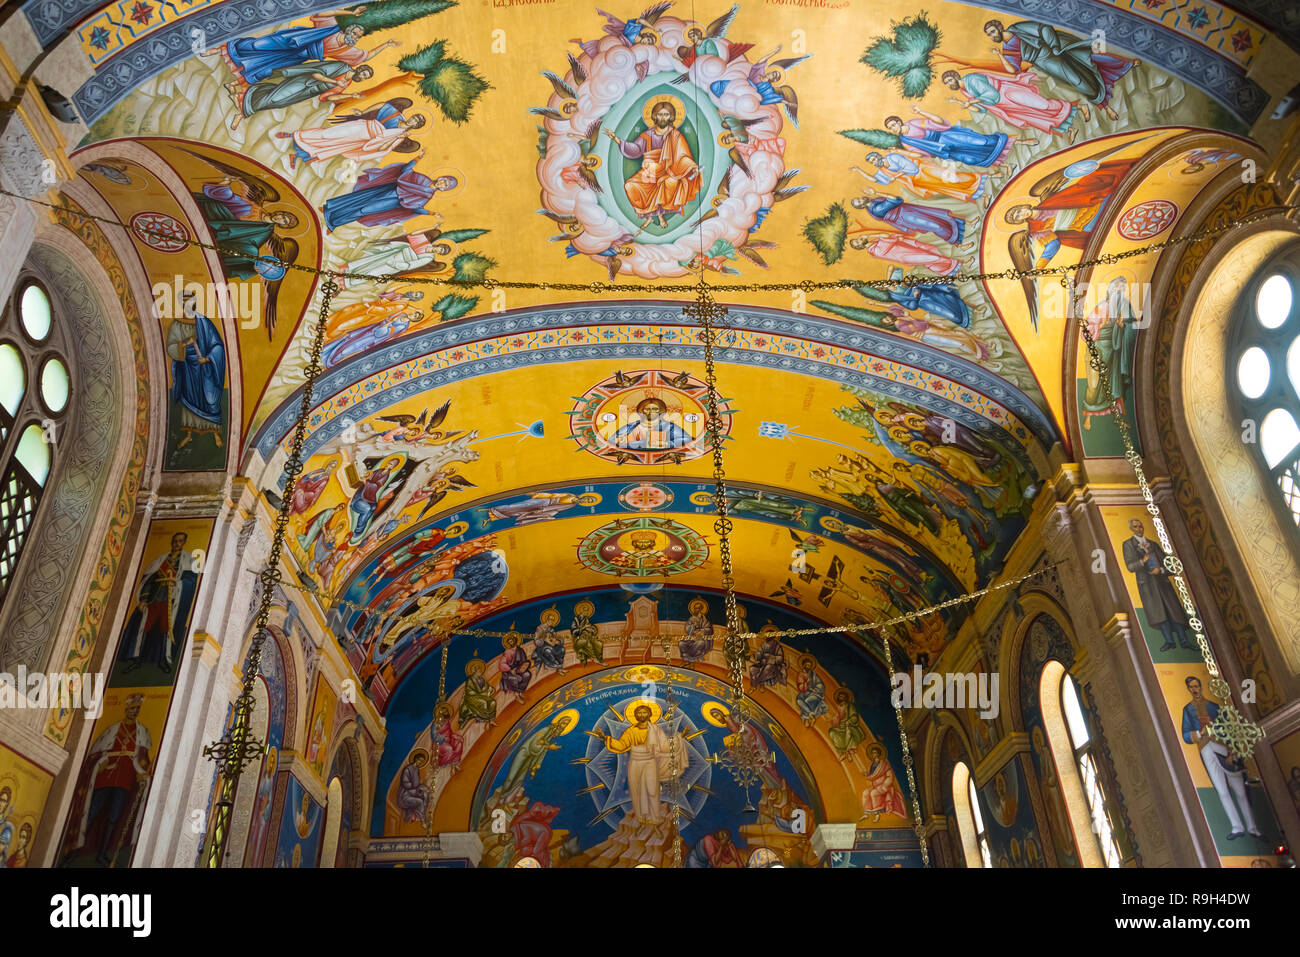 Interior of Cathedral Temple of Holy Transfiguration of Our Lord, Trebinje, Bosnia and Herzegovina - Stock Image